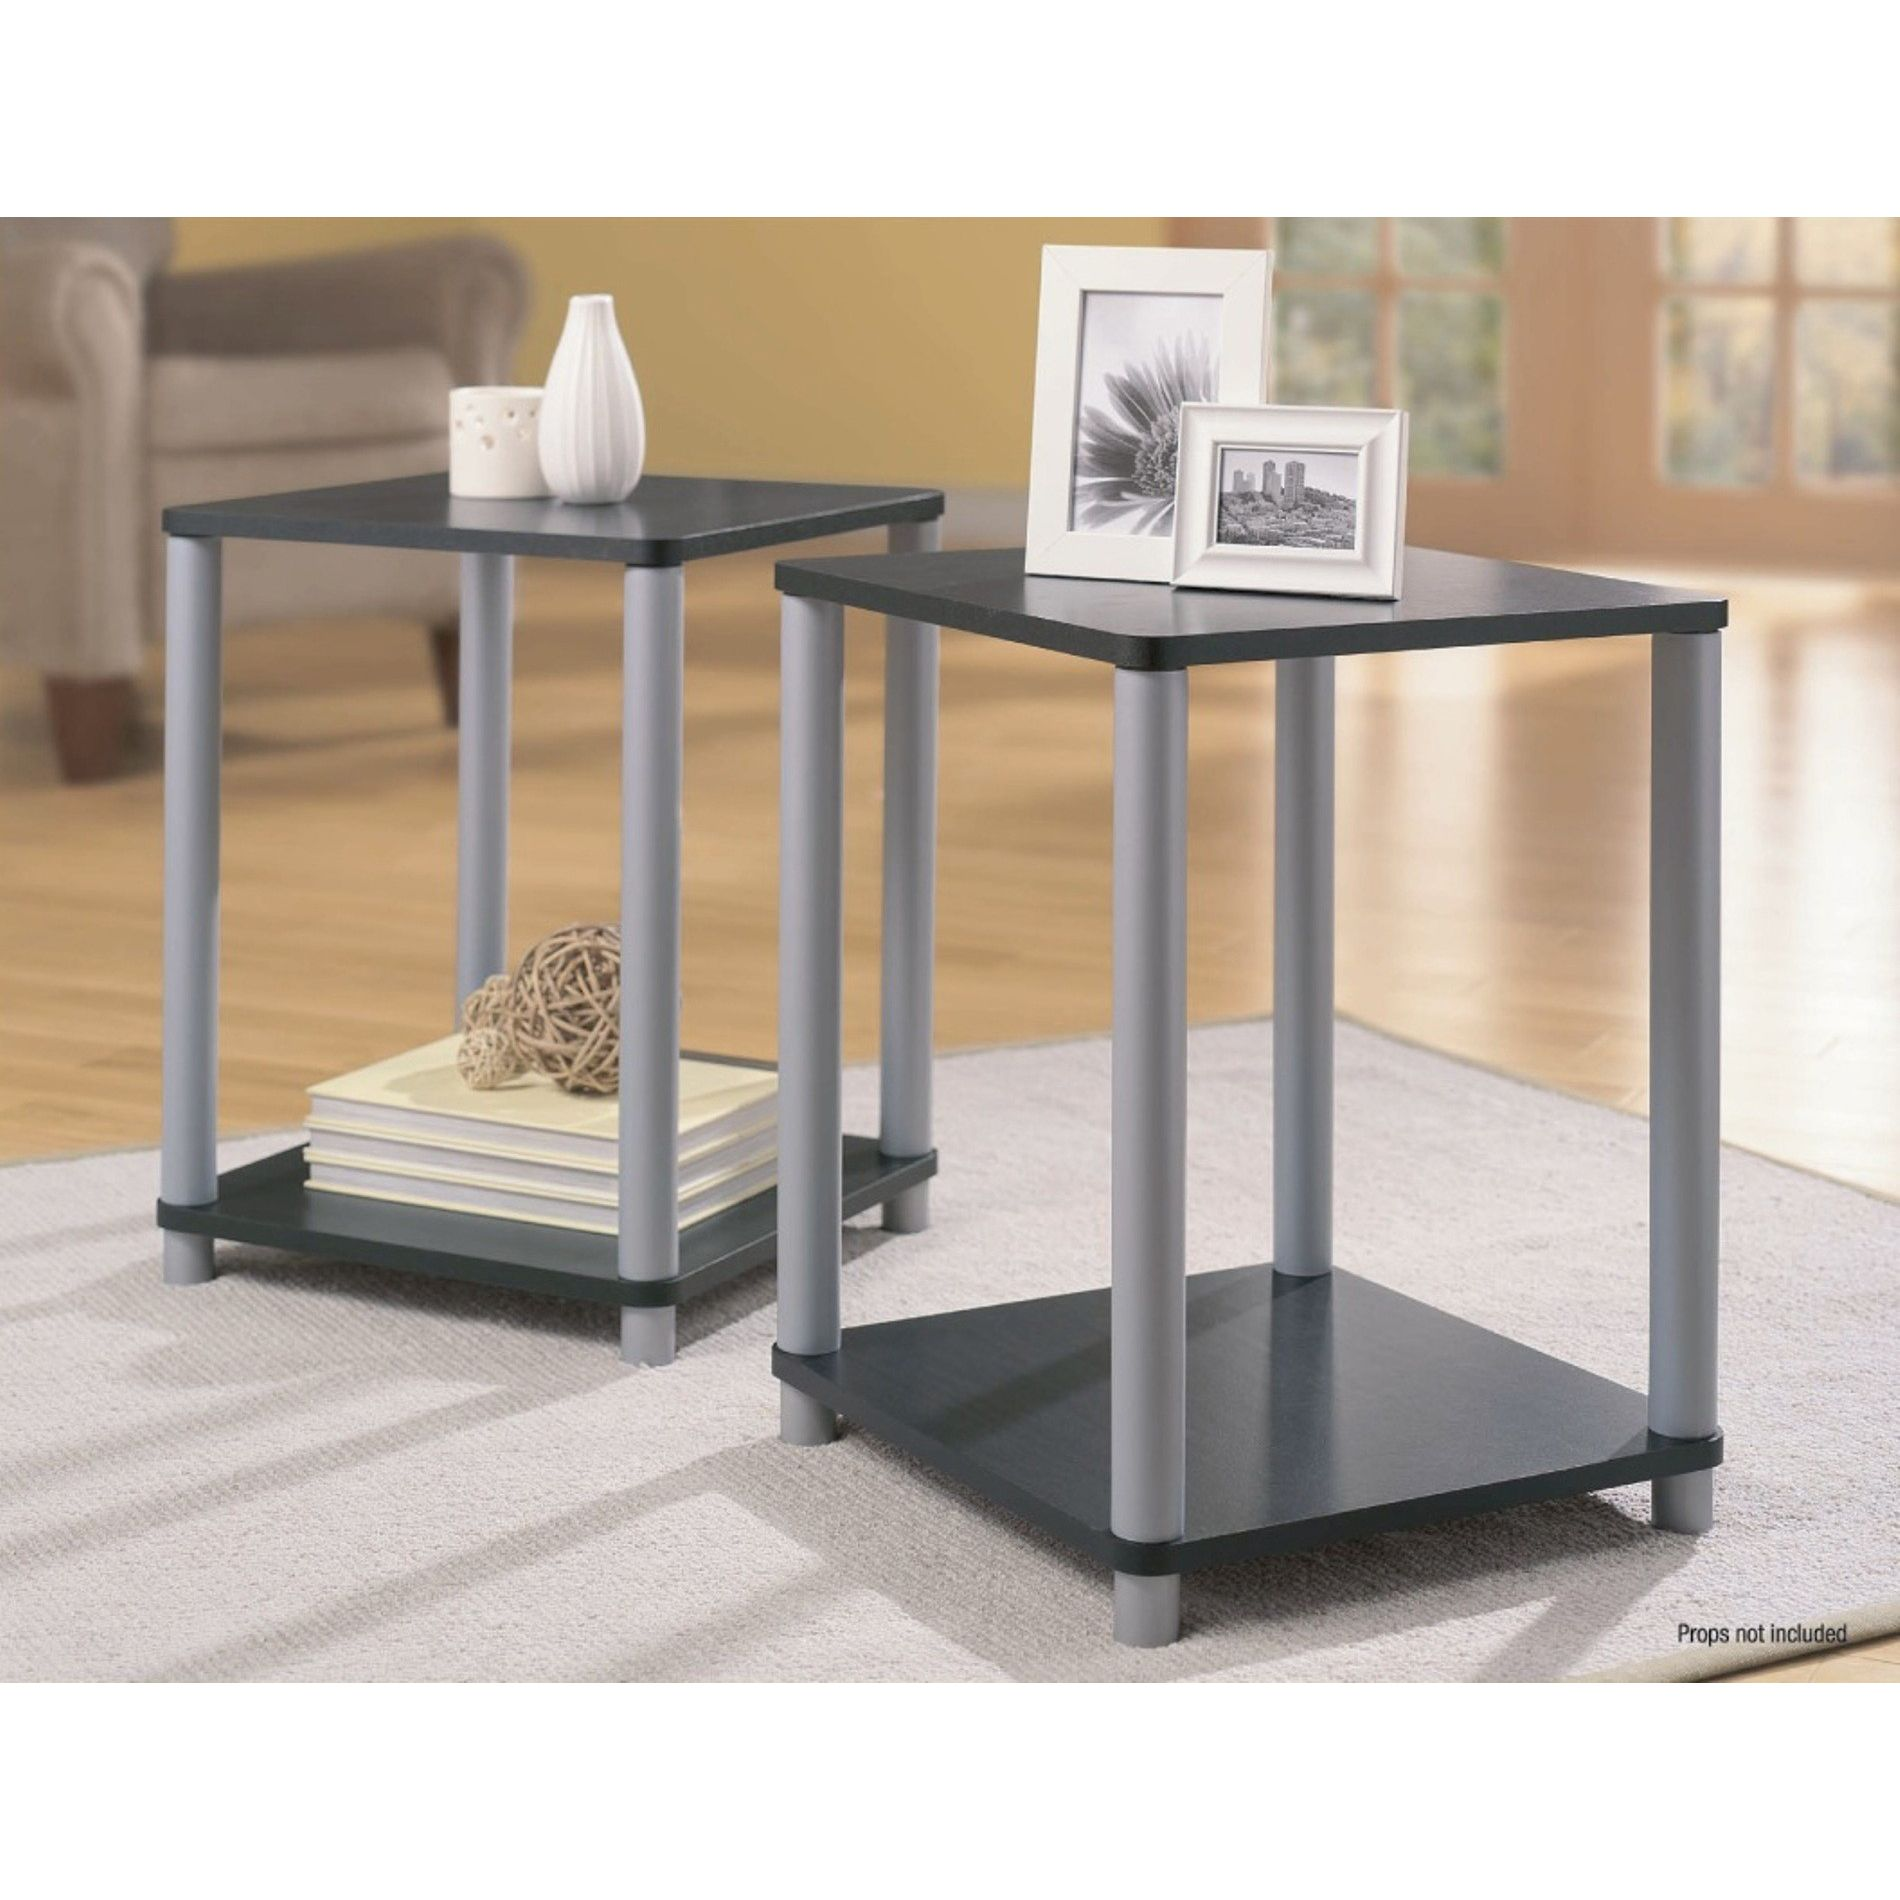 essential home end tables black and silver table set spin prod kmart furniture raw wood kitchen gold side modern round seagrass coffee what acme thomasville quality color rug goes